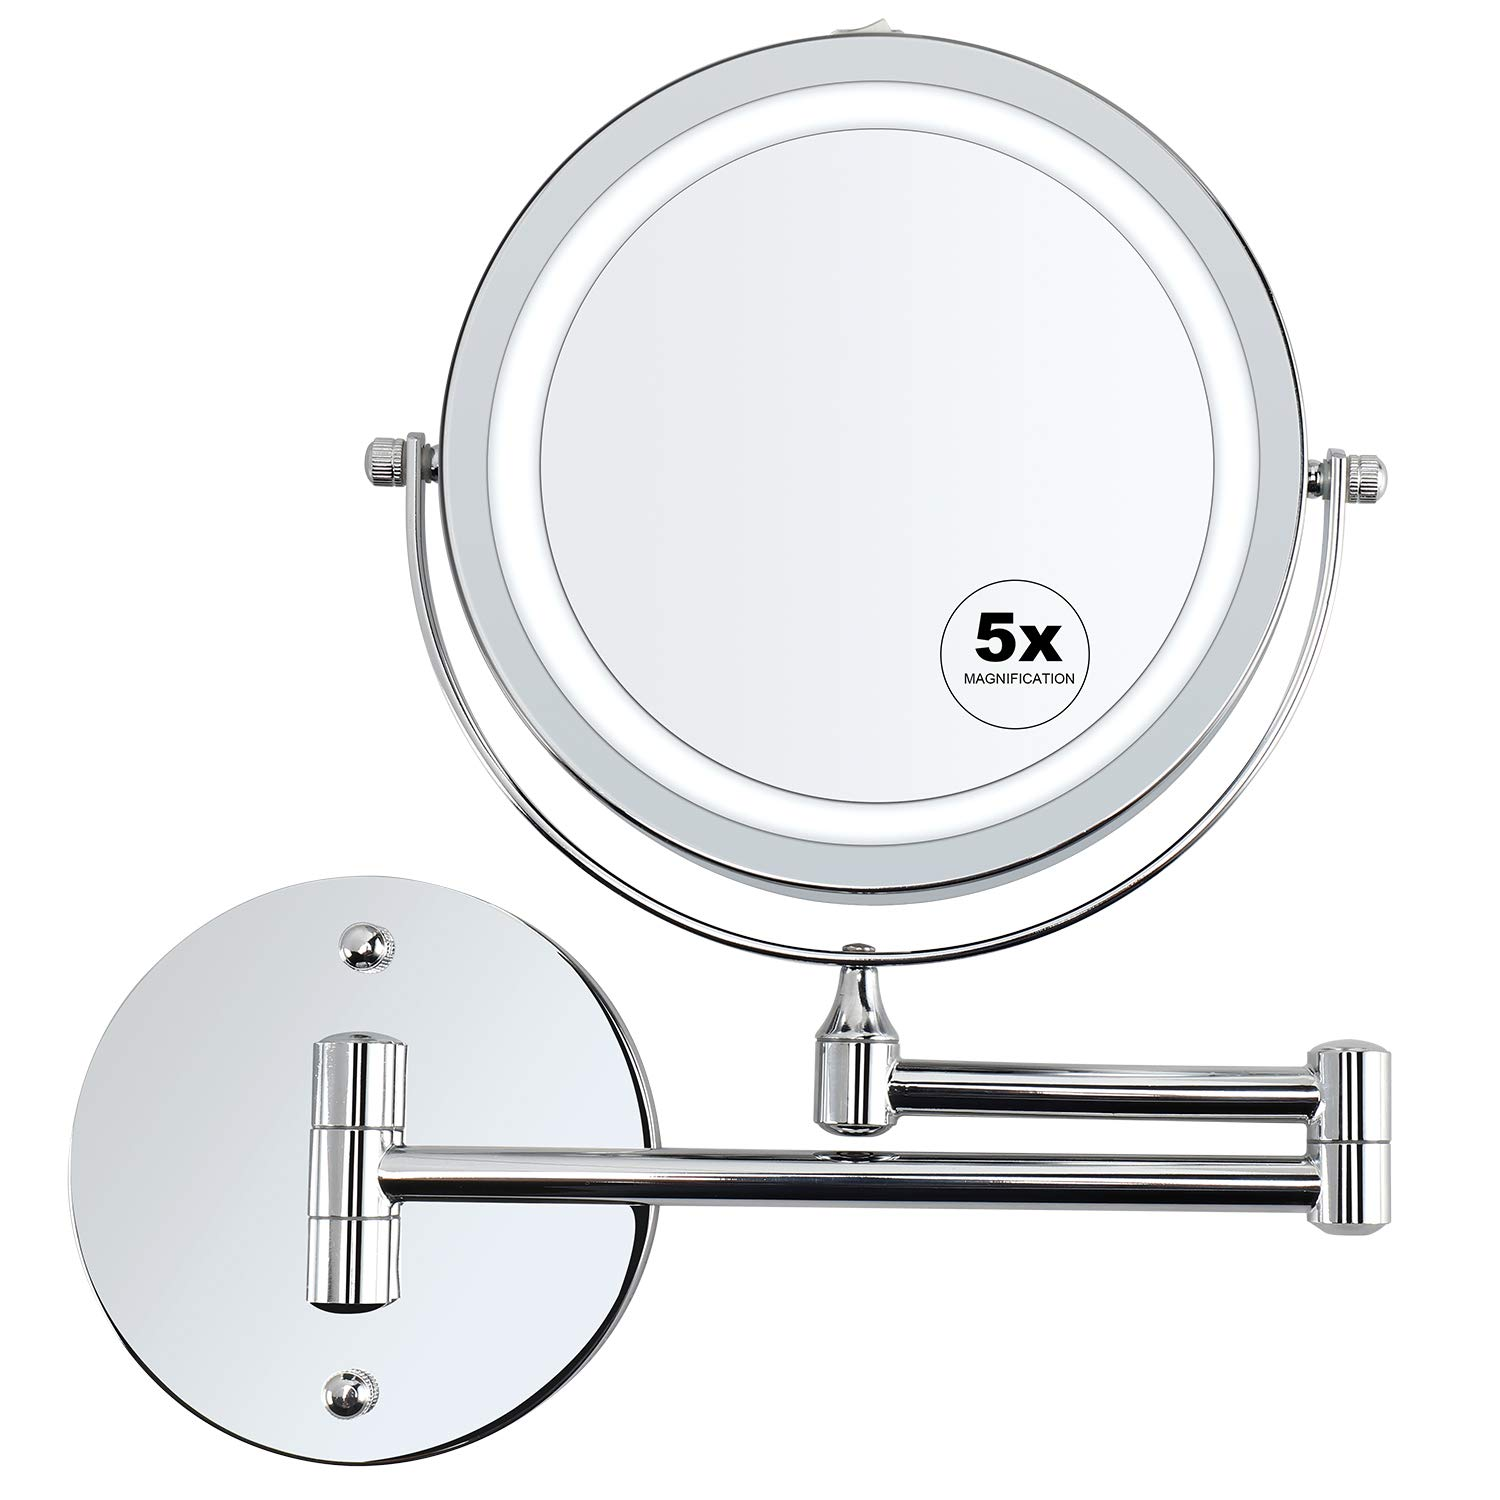 alvorog Wall Mounted Makeup Mirror LED Lighted 5X Magnifying Cosmetic Mirror 360° Swivel Extendable Two Sided Vanity Mirror for Bathroom, Powered by 4 x AAA Batteries (Not Included) by alvorog